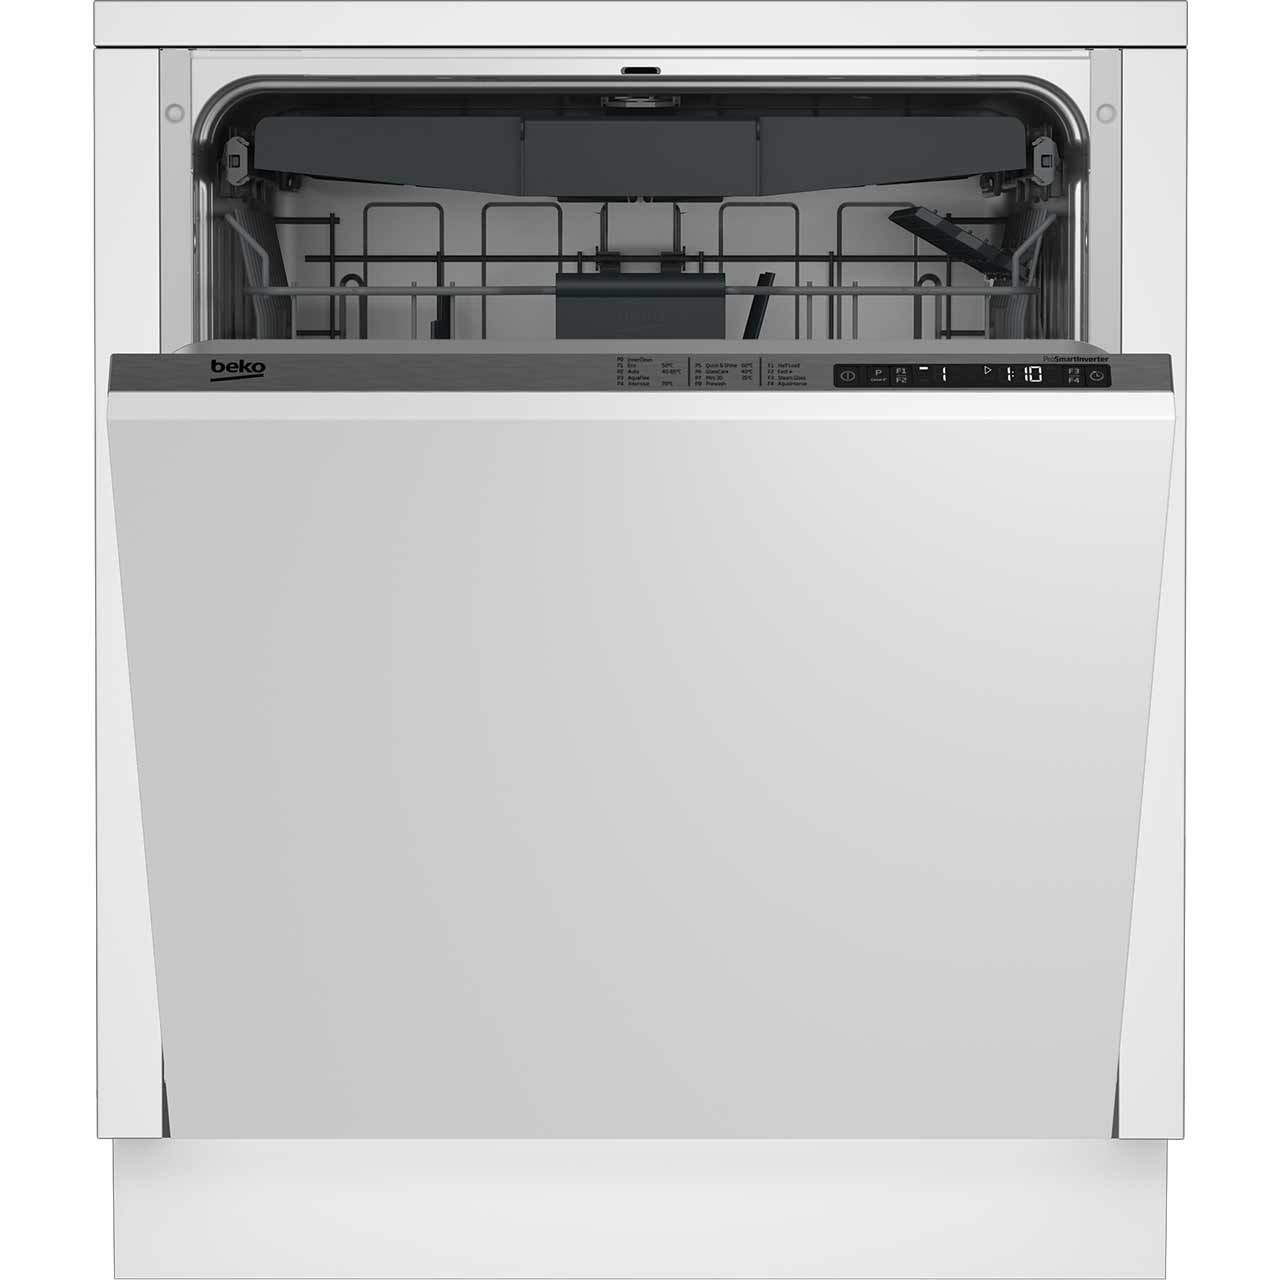 din28r22 si   beko dishwasher   fully integrated   ao com din28r22 si   beko dishwasher   fully integrated   ao com      rh   pinterest co uk